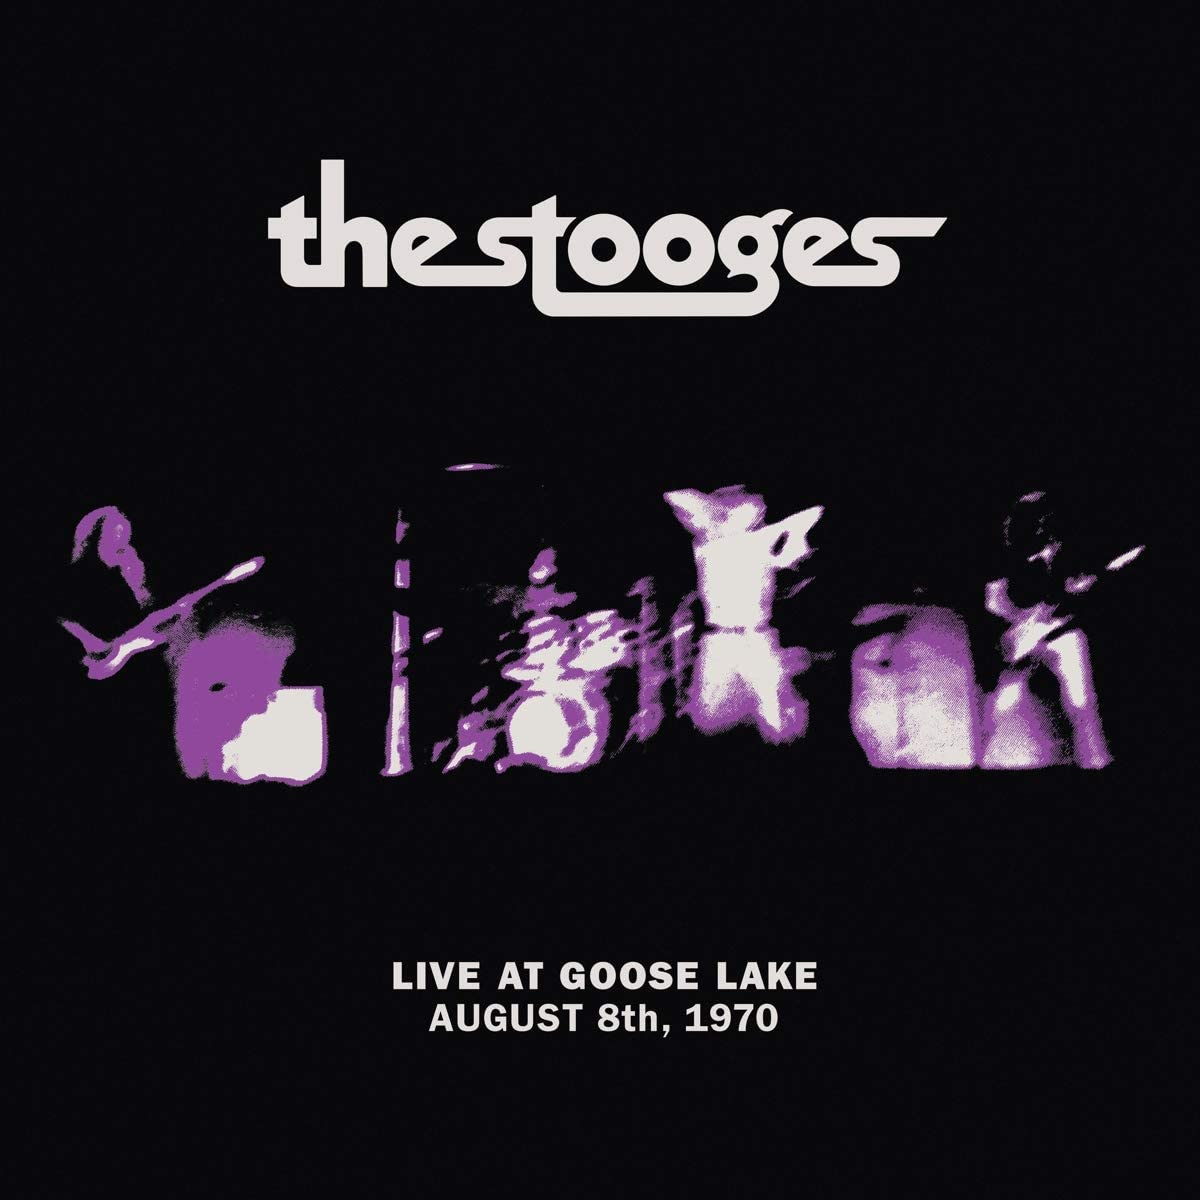 The Stooges - Live At Goose Lake August 8th, 1970 [LP]